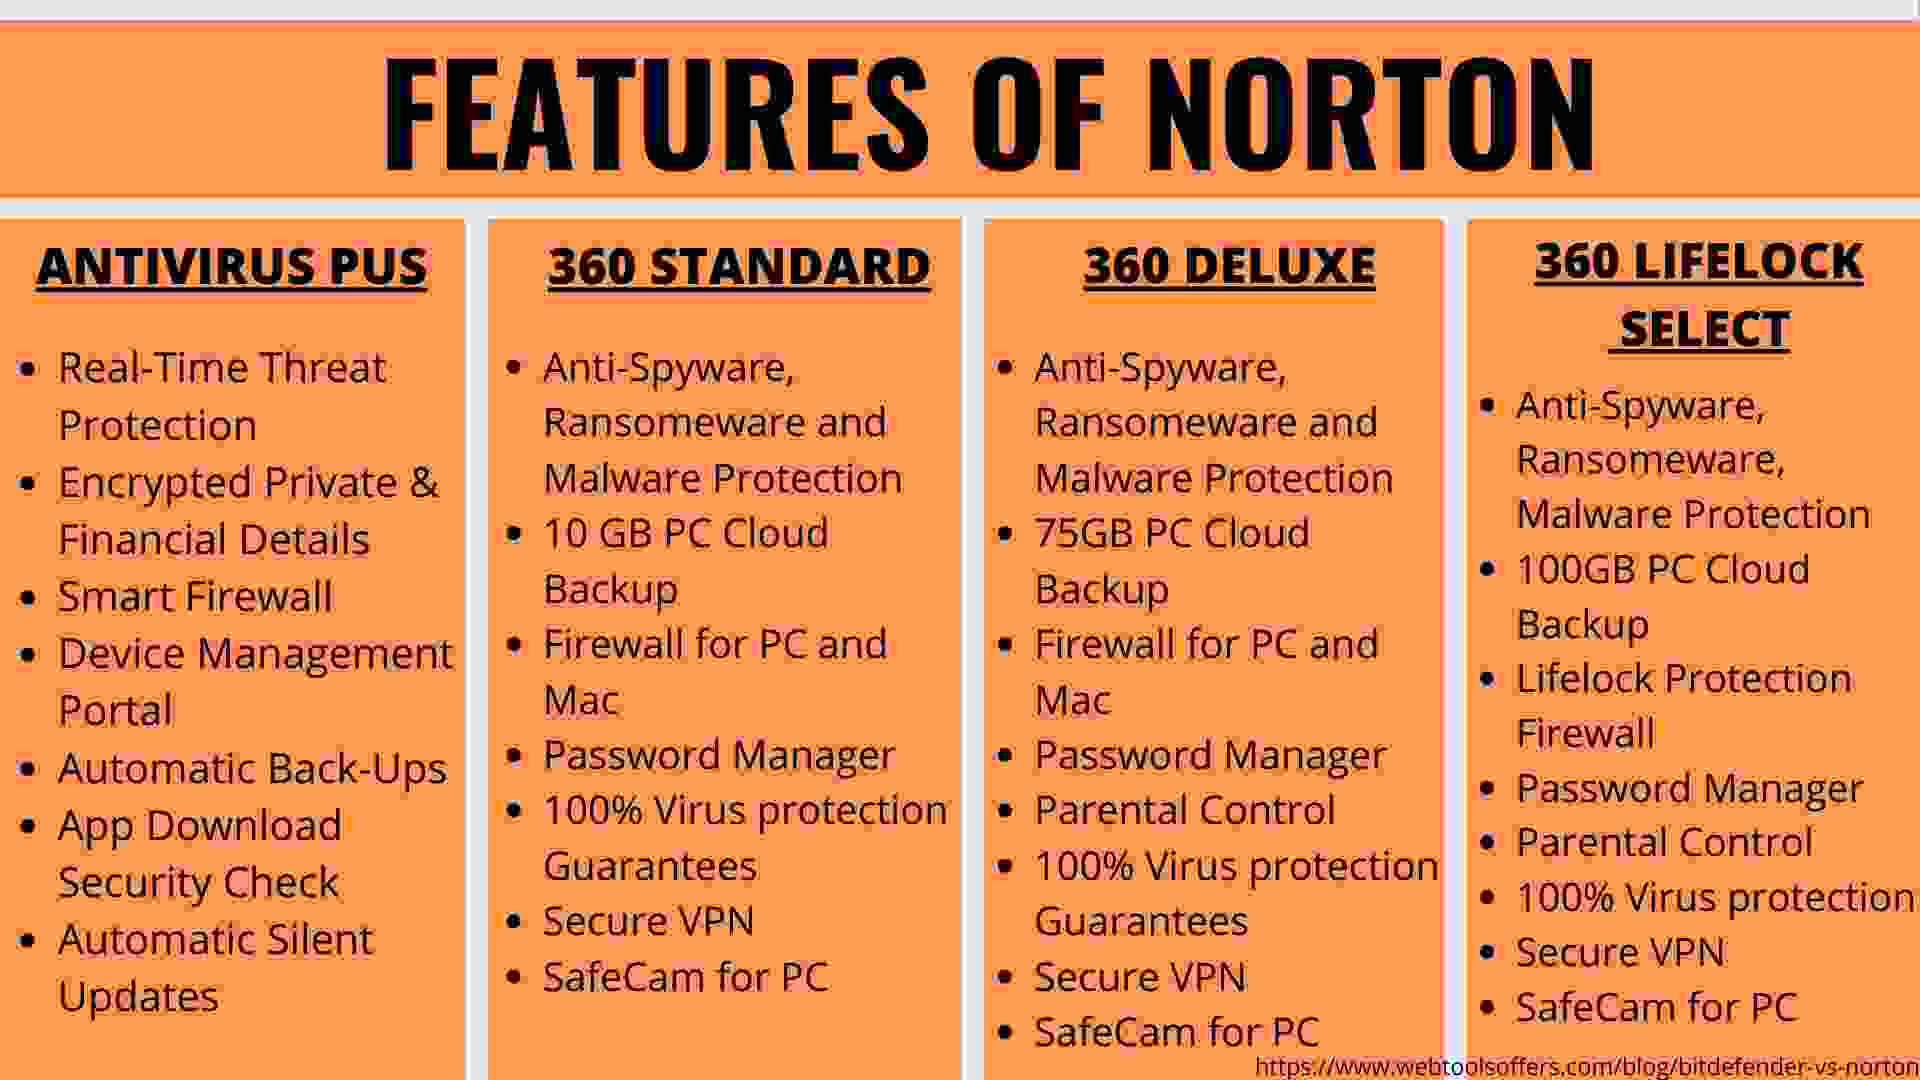 FEATURES OF norton